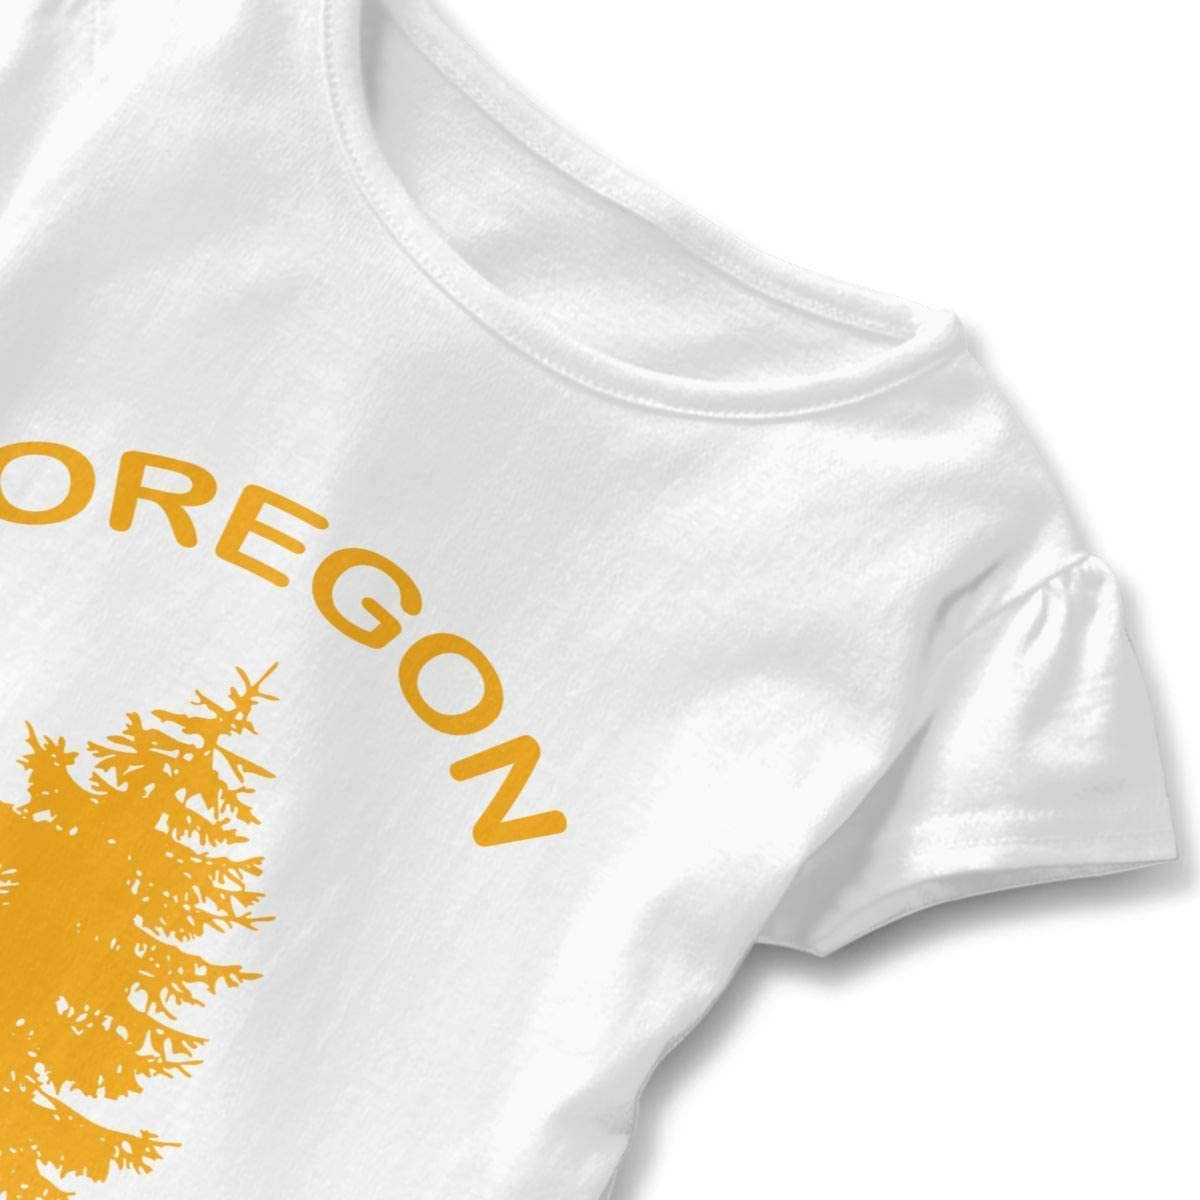 Toddler Girls Ruffle T-Shirt Oregon Douglas Pine Tree Short Sleeve 2-6T